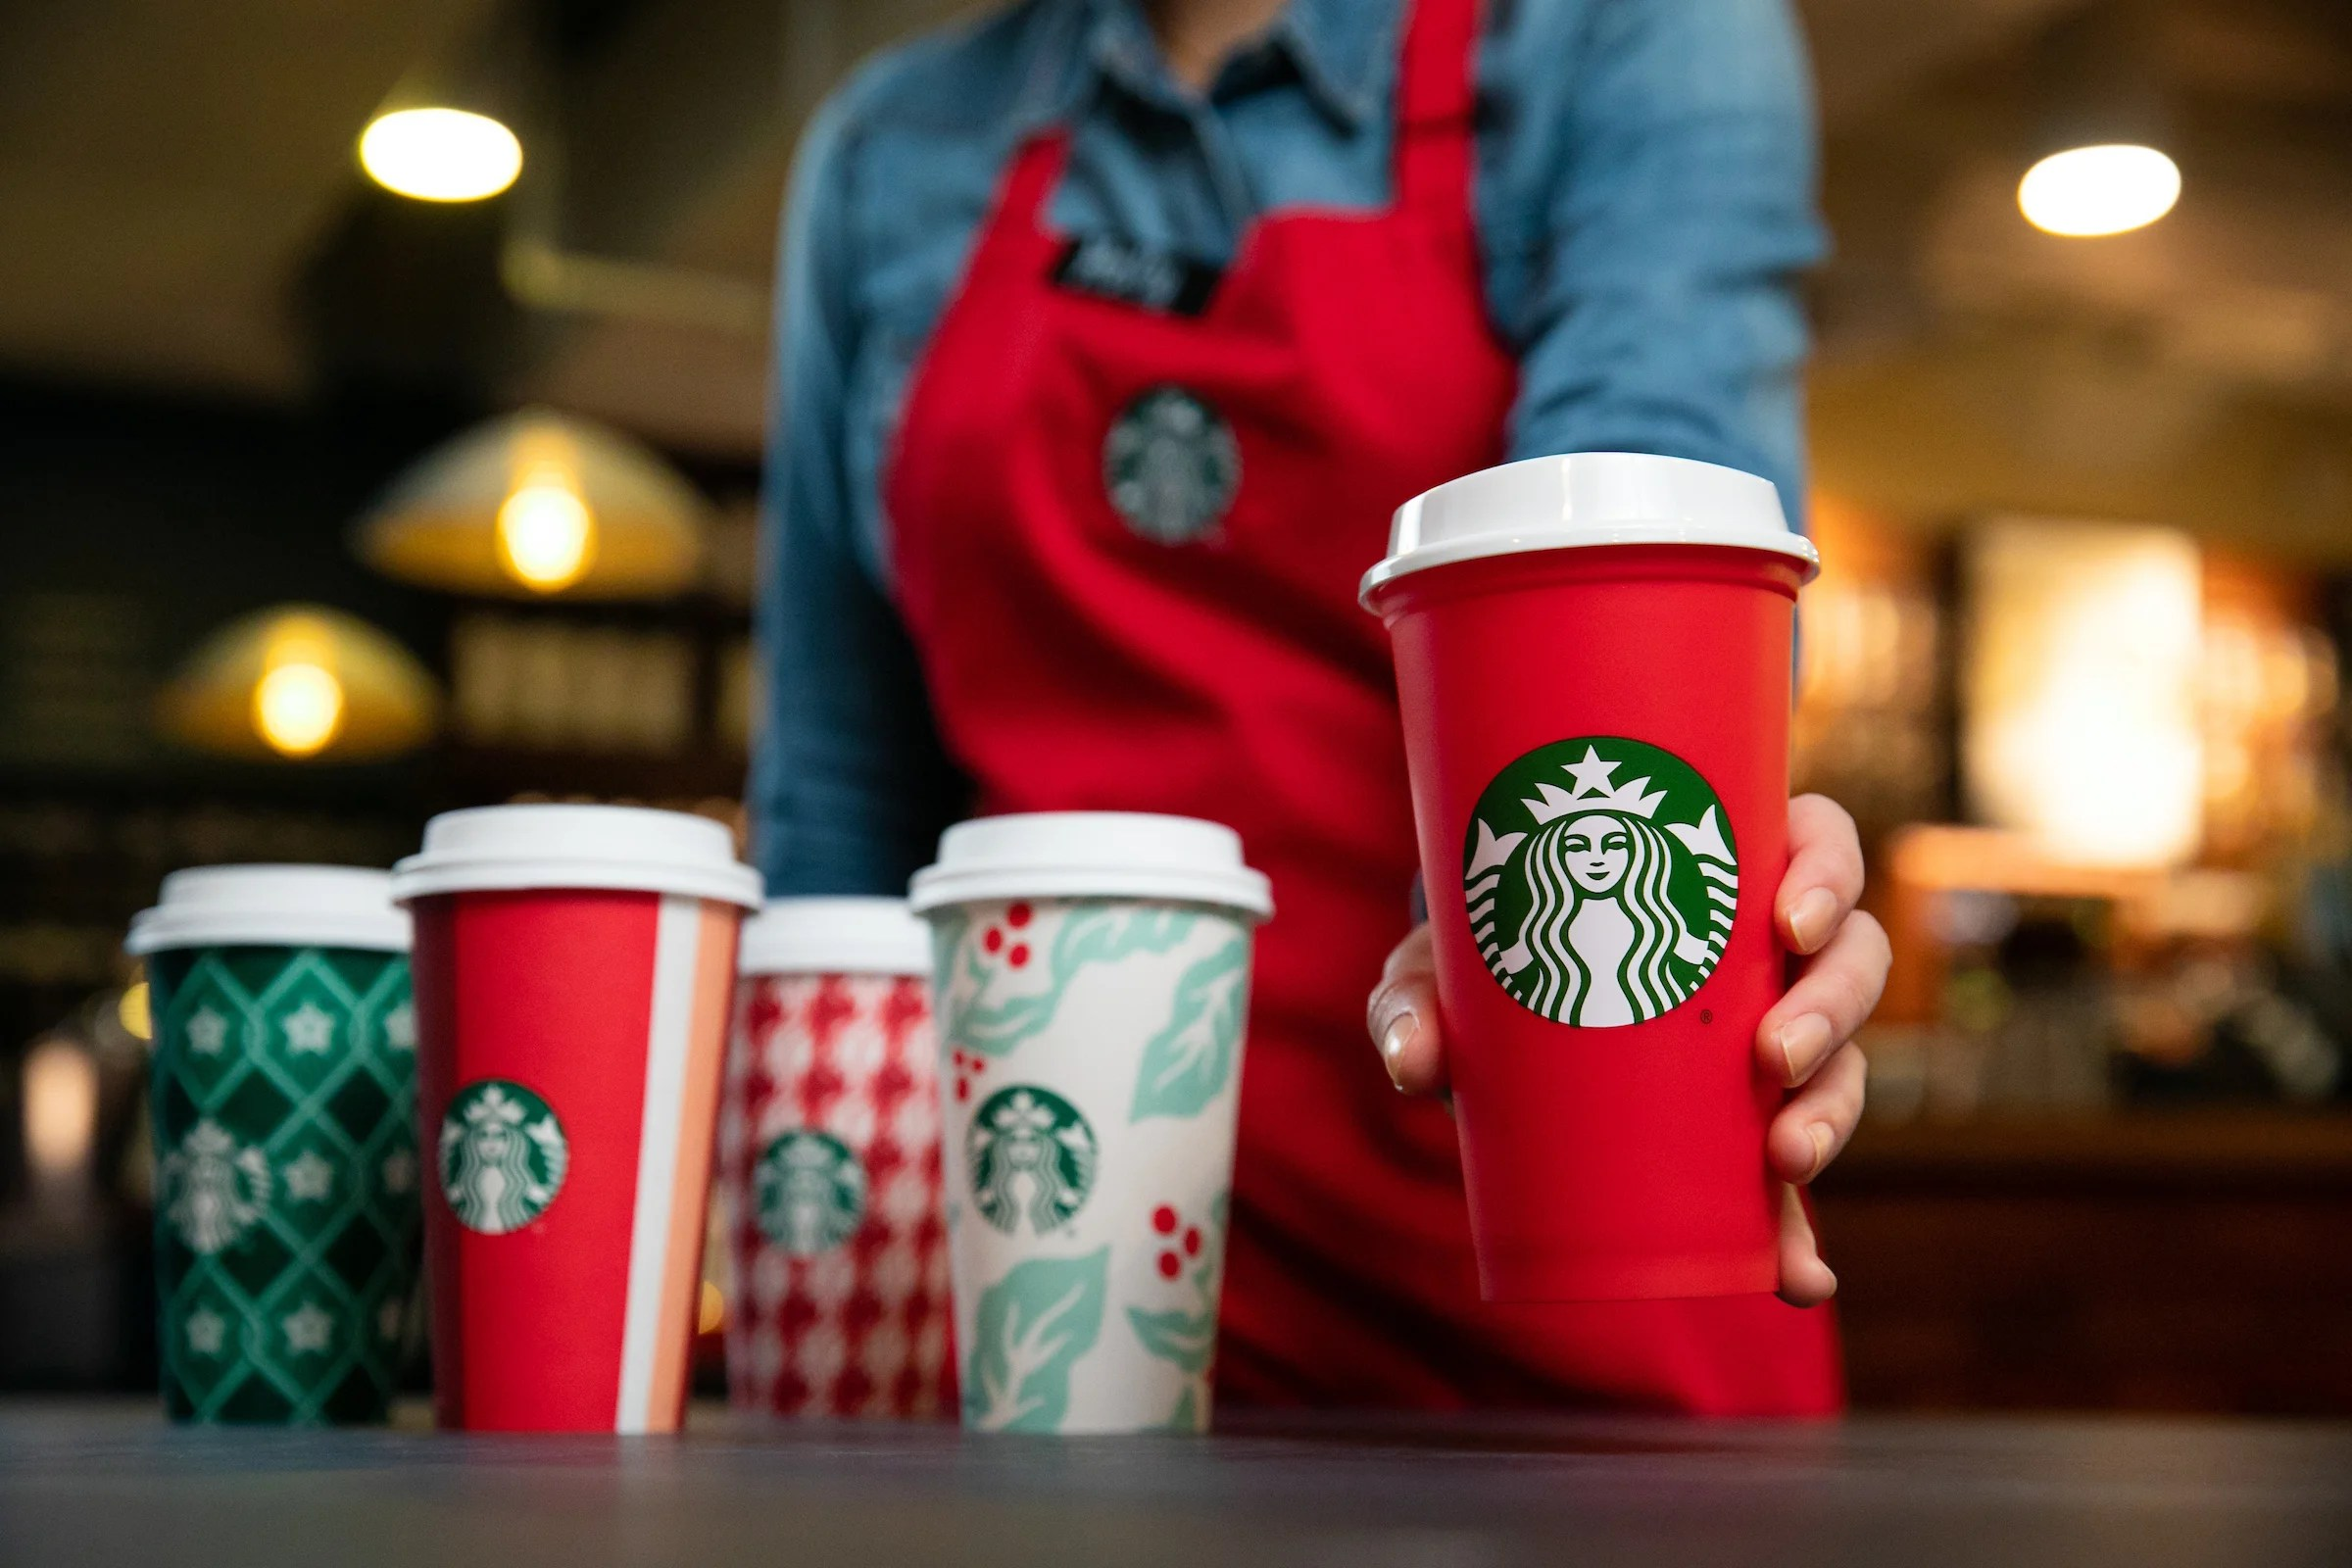 Starbucks Holiday Cups Caused Controversy in Just 2 Hours